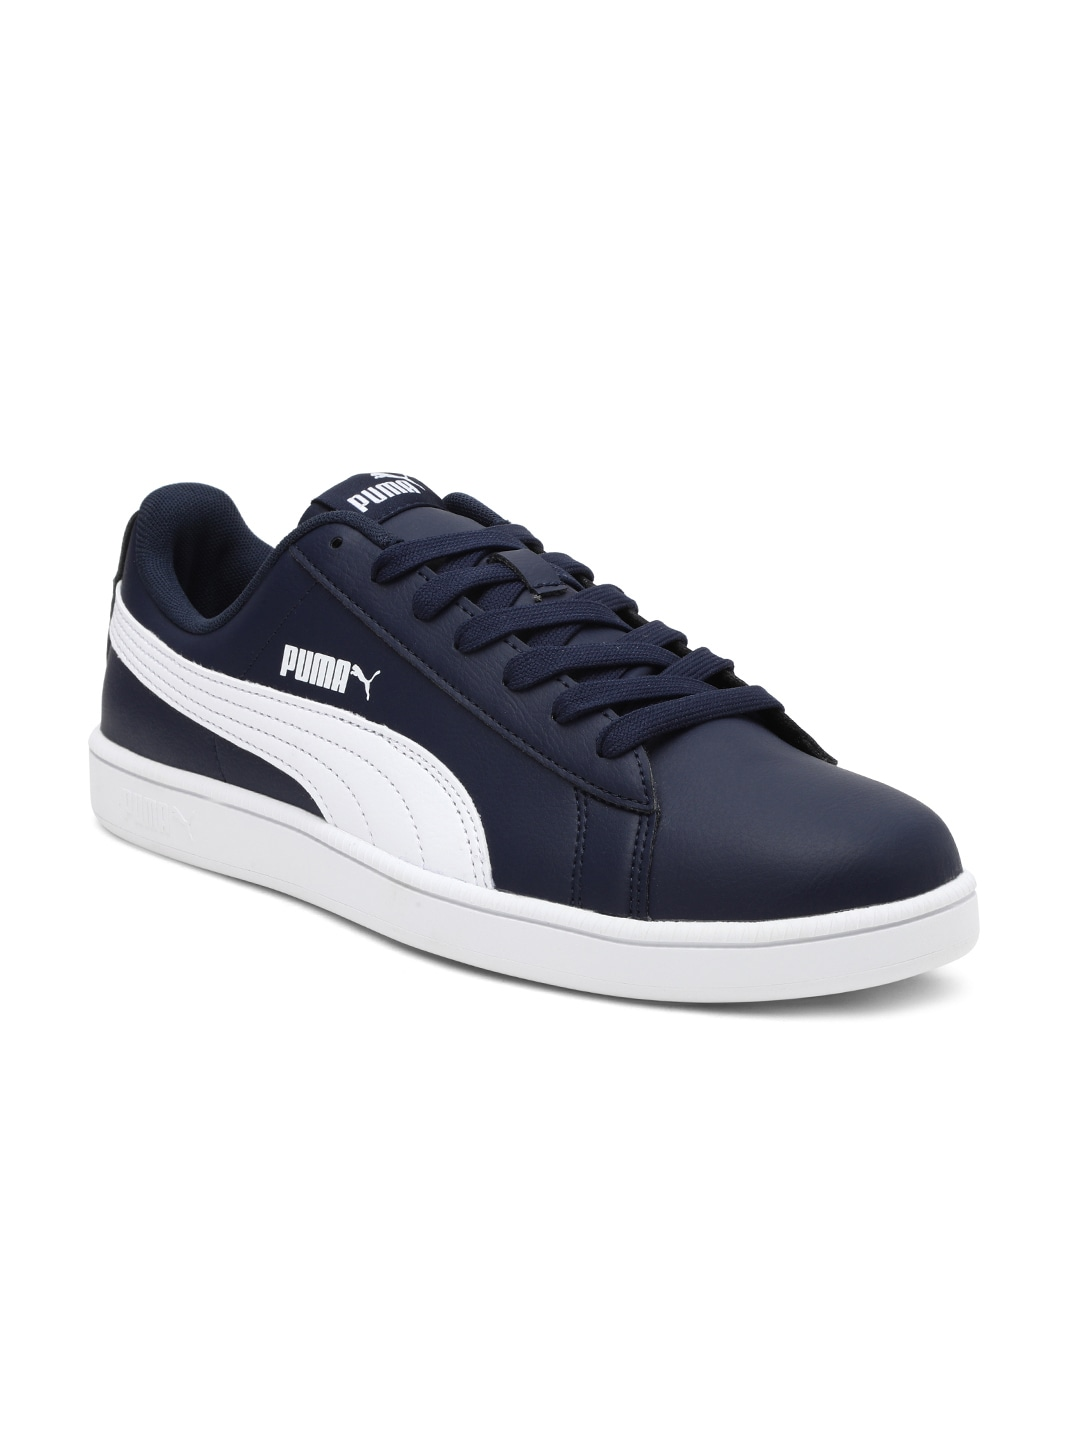 Blue & White UP Sneakers